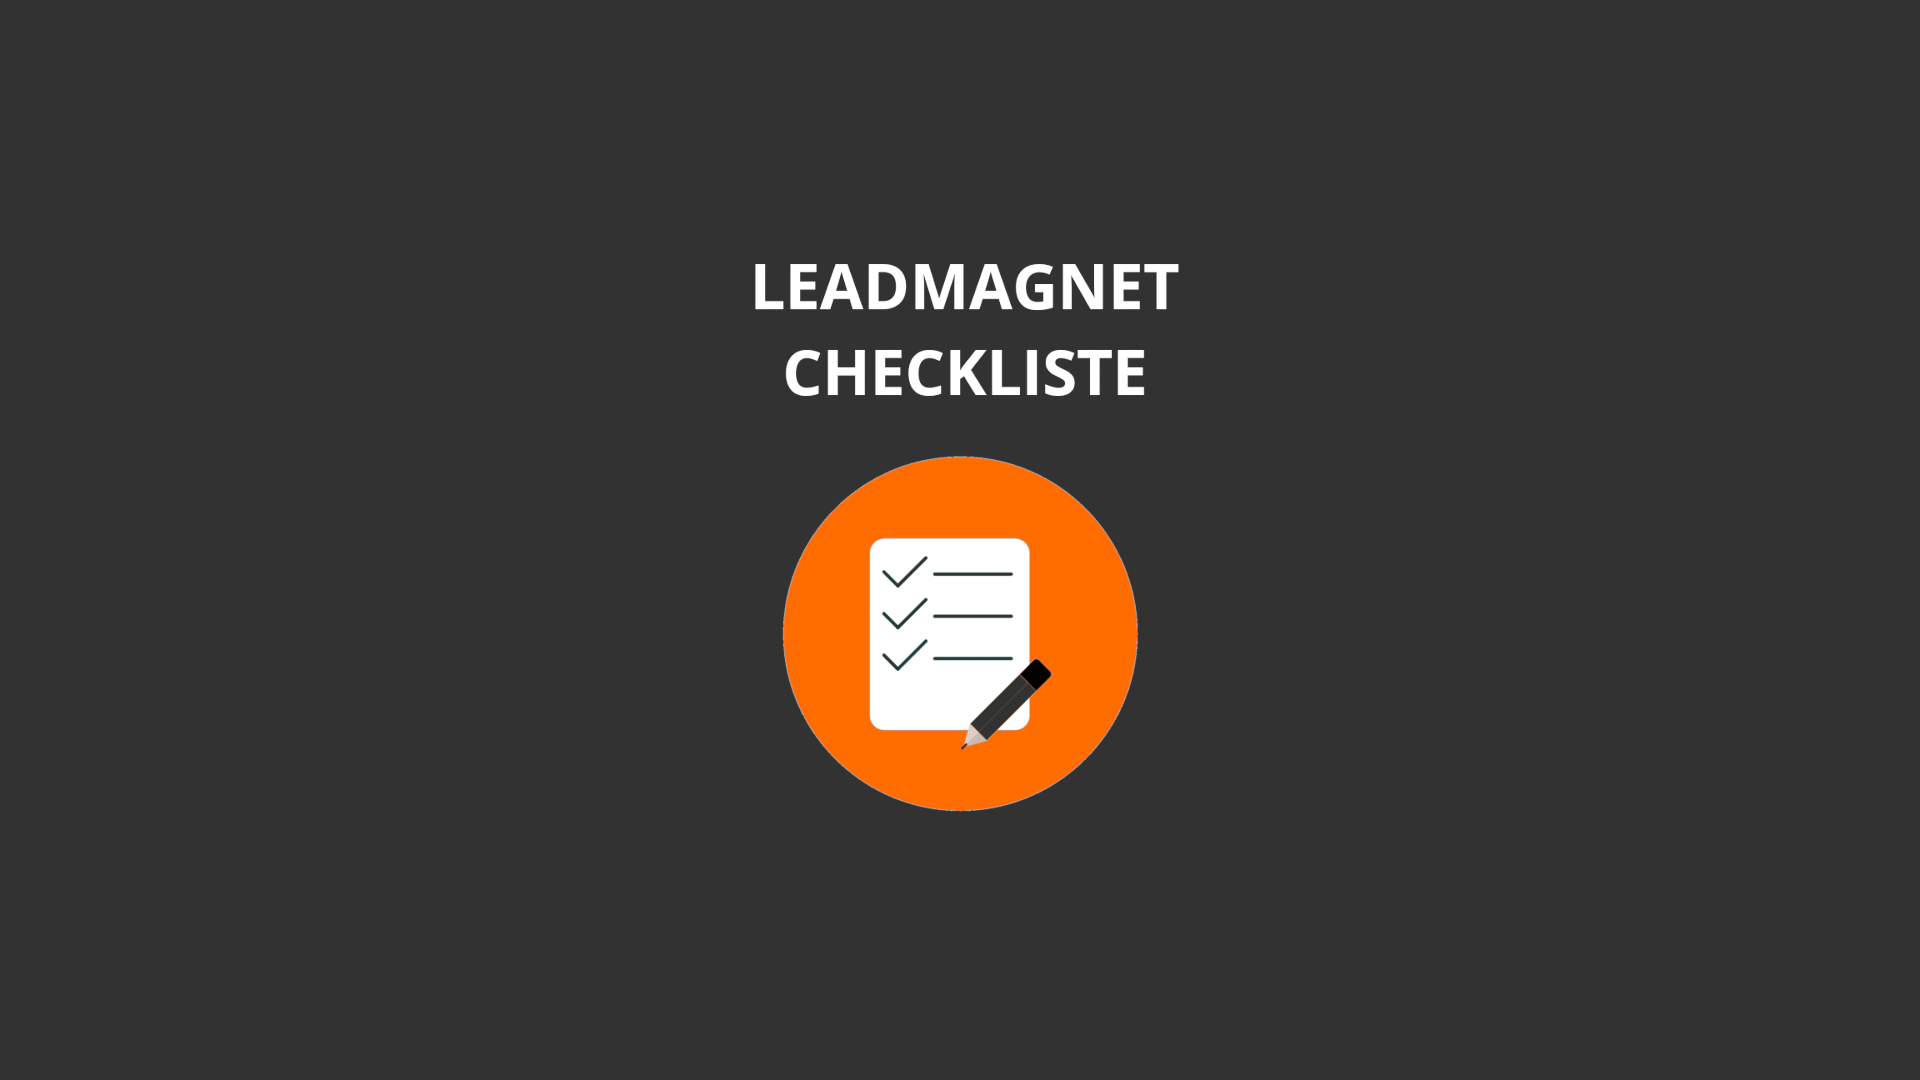 Leadmagnet Checkliste neu